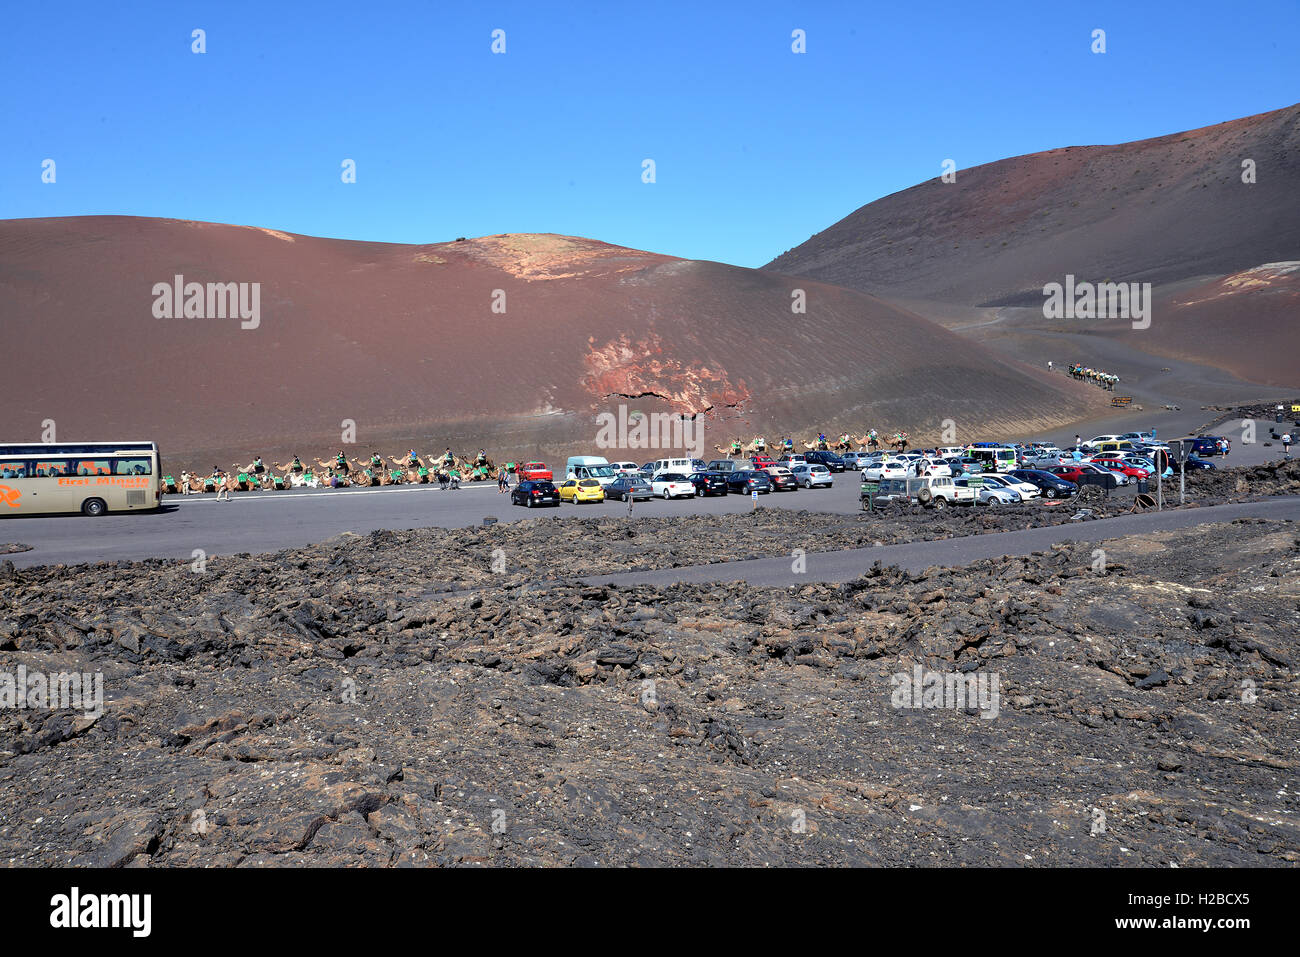 Camel Safari in Lanzarote Canary Islands.View of the tourists, camels volcanic landscape cars in car park - Stock Image